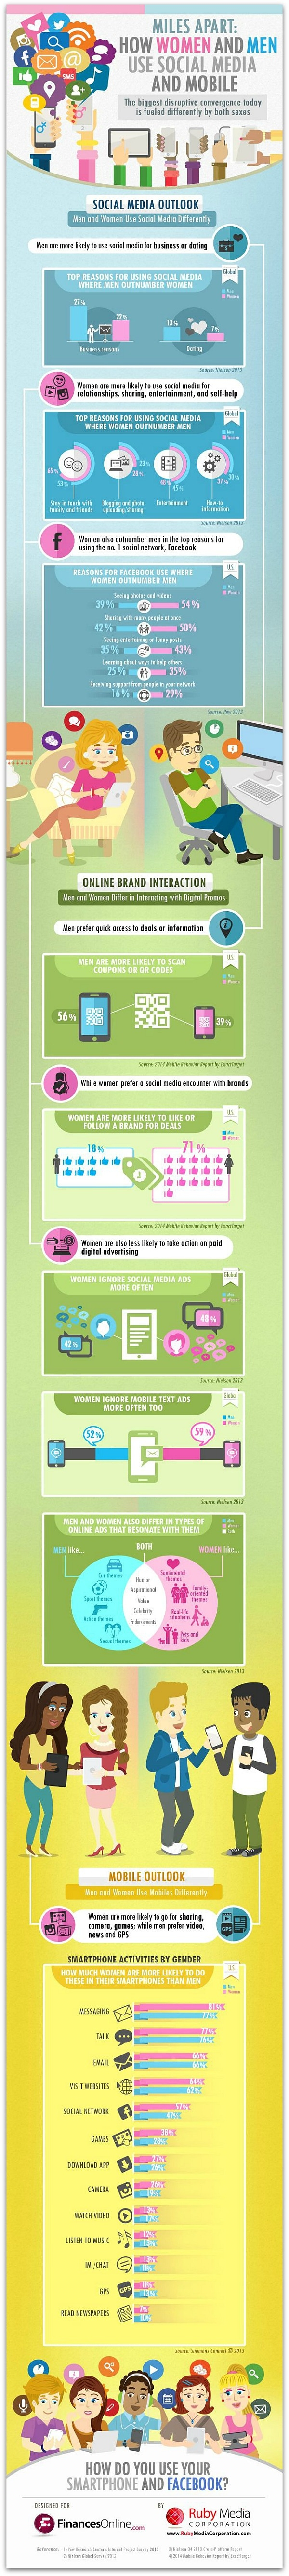 How_Men_Women_Use_Social_Media_Infographic